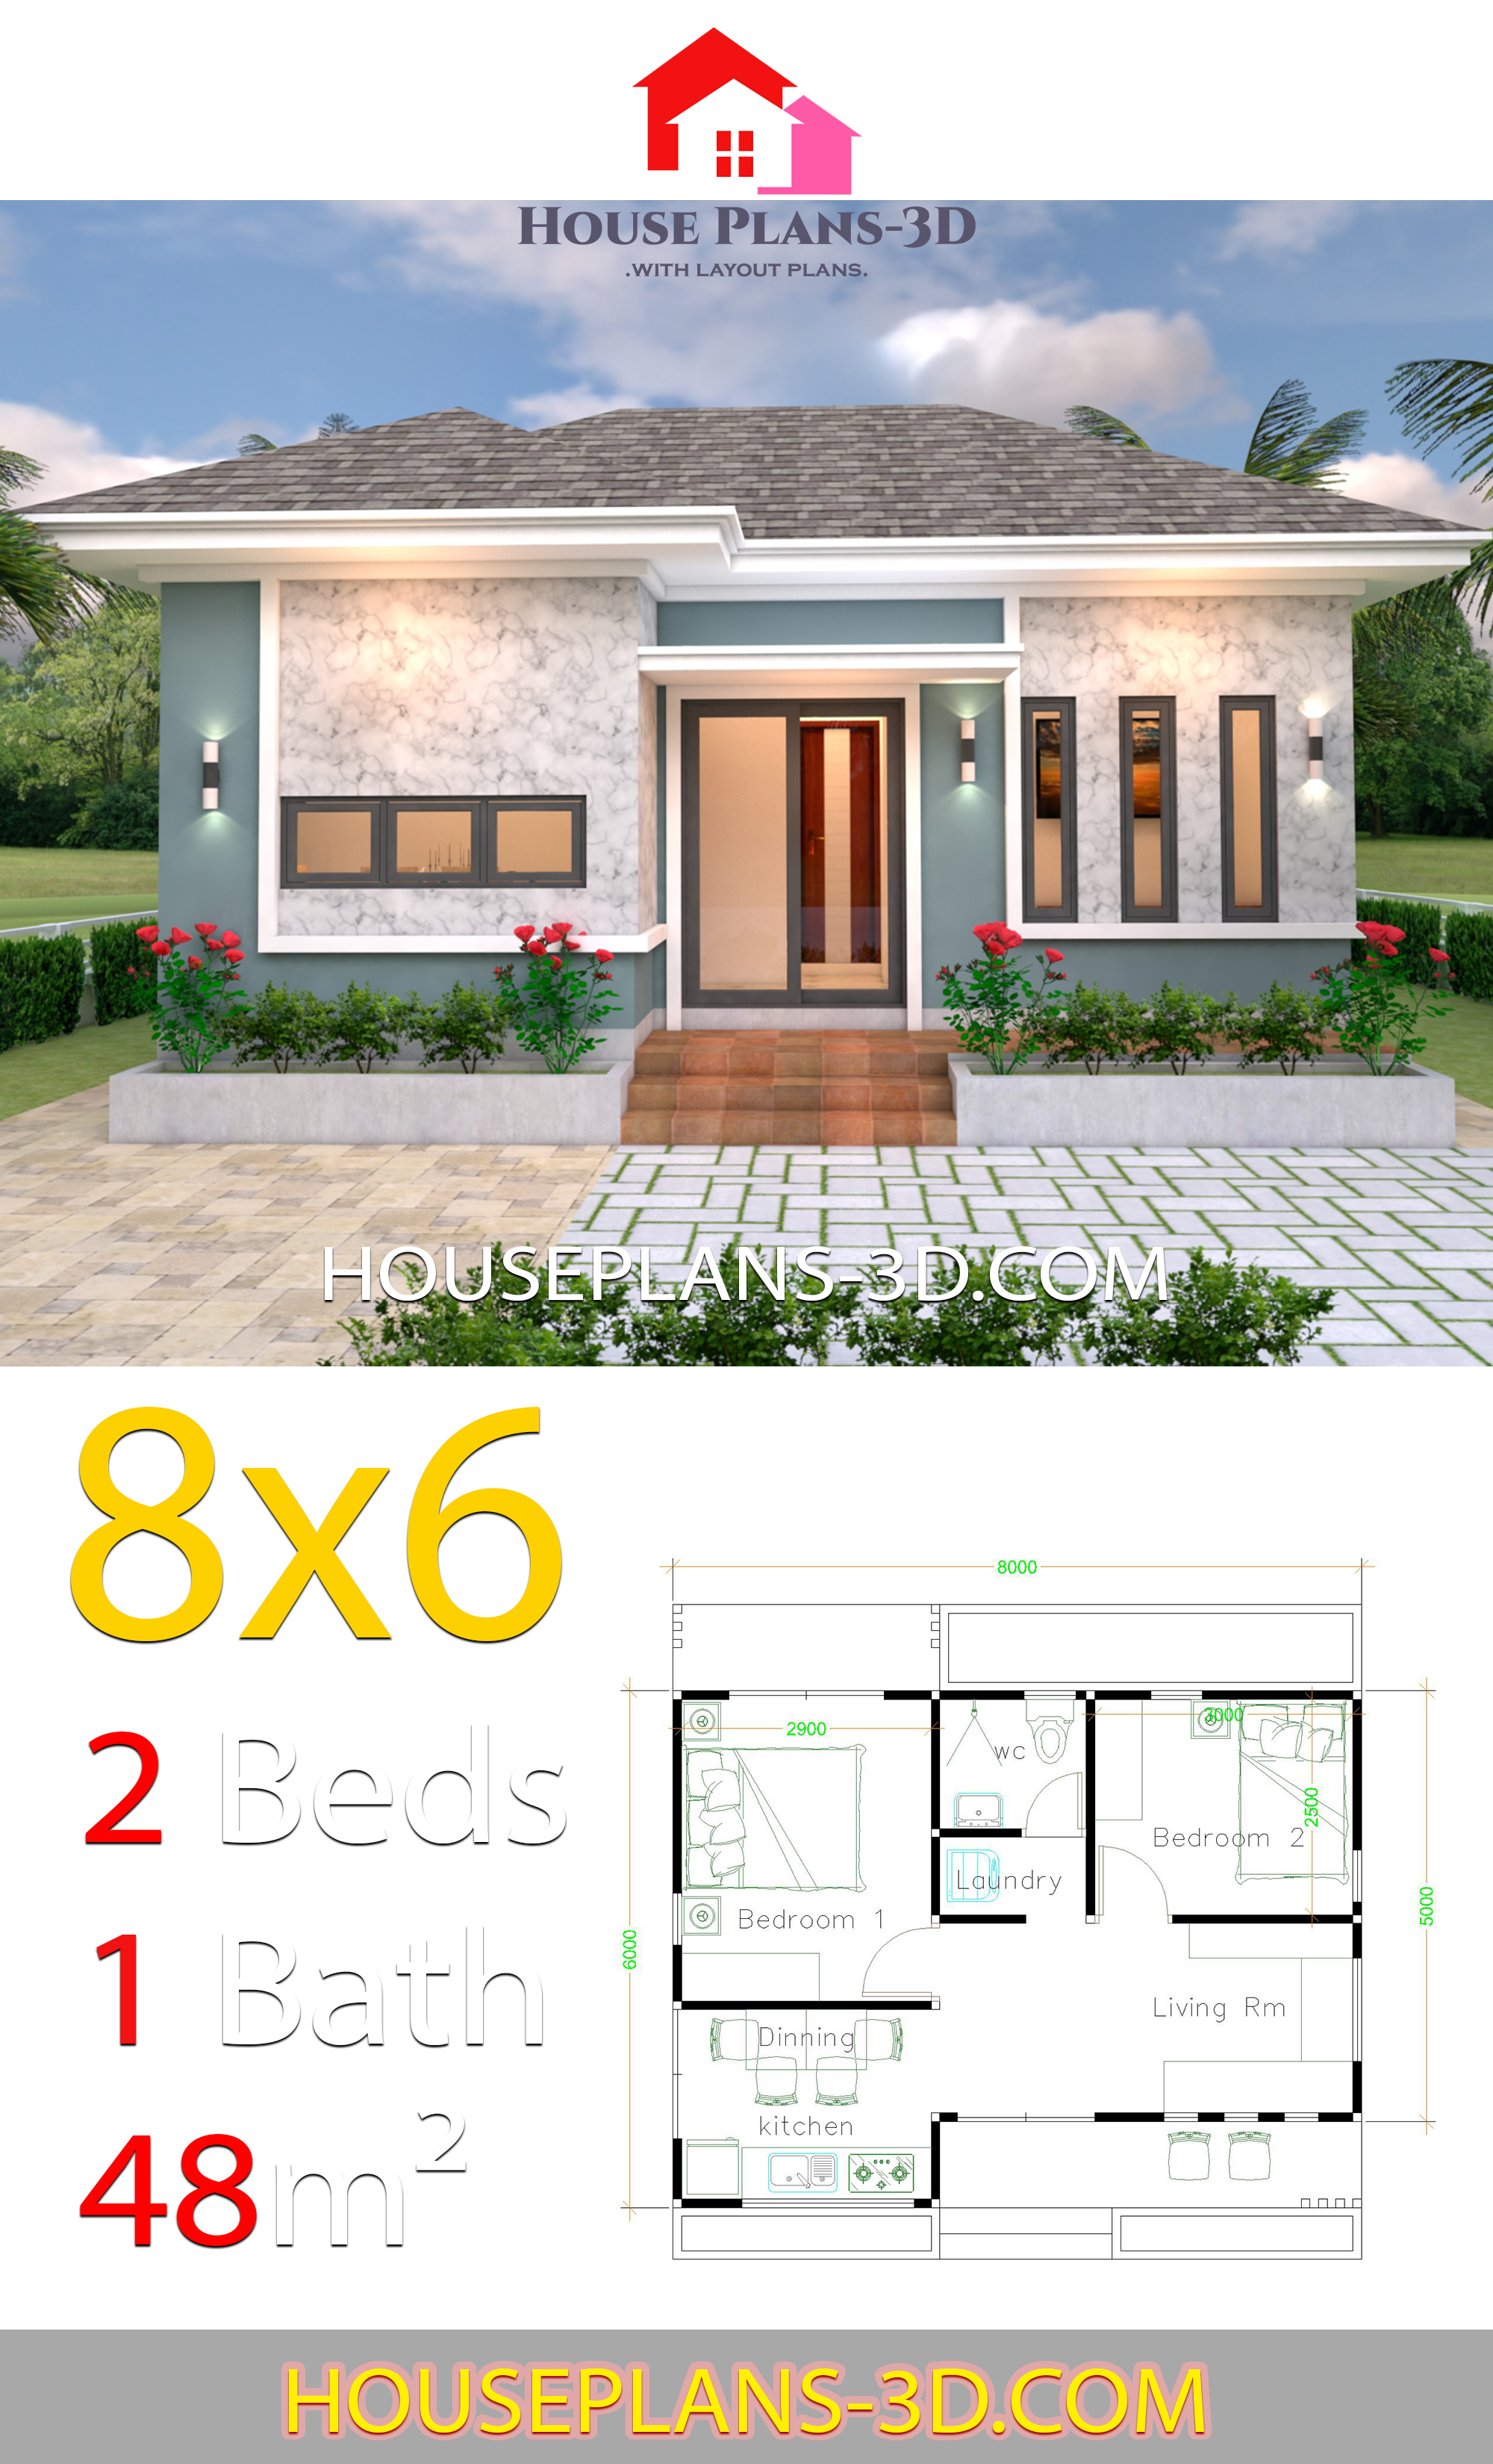 My 3d Room Design: House Plans 3d 8x6 With 2 Bedrooms Hip Roof